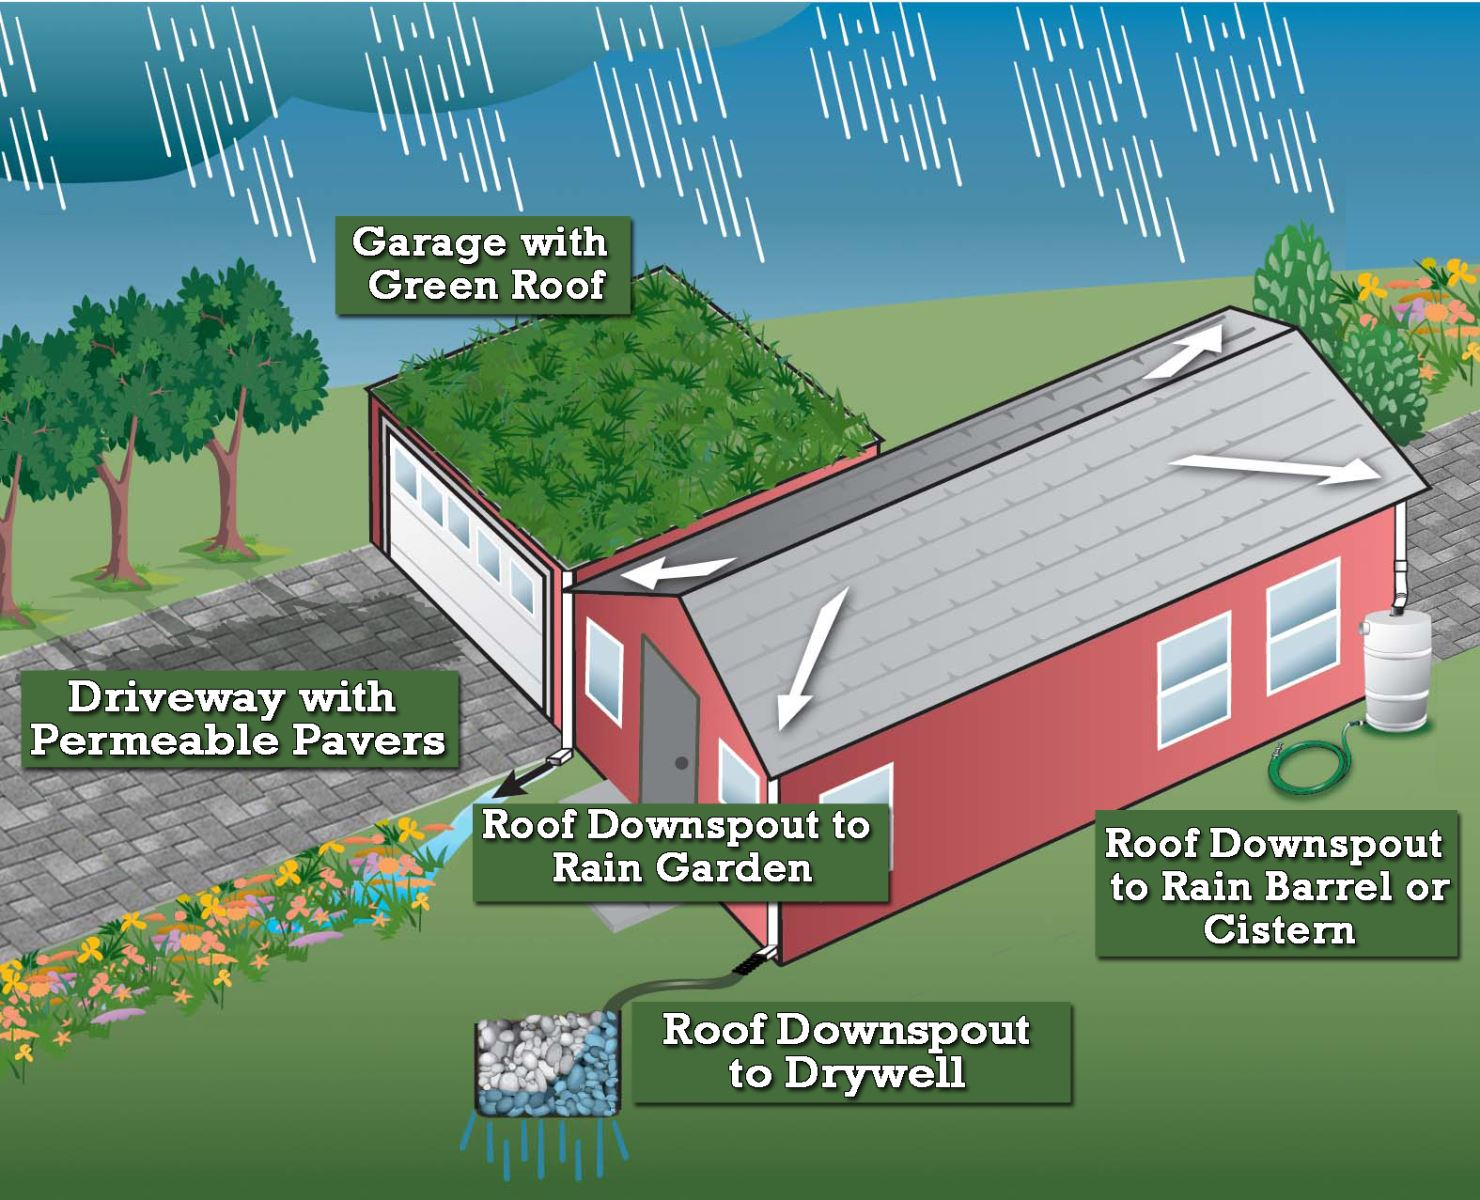 Graphic of a house with several types of stormwater management practices, including a green roof and rain garden.